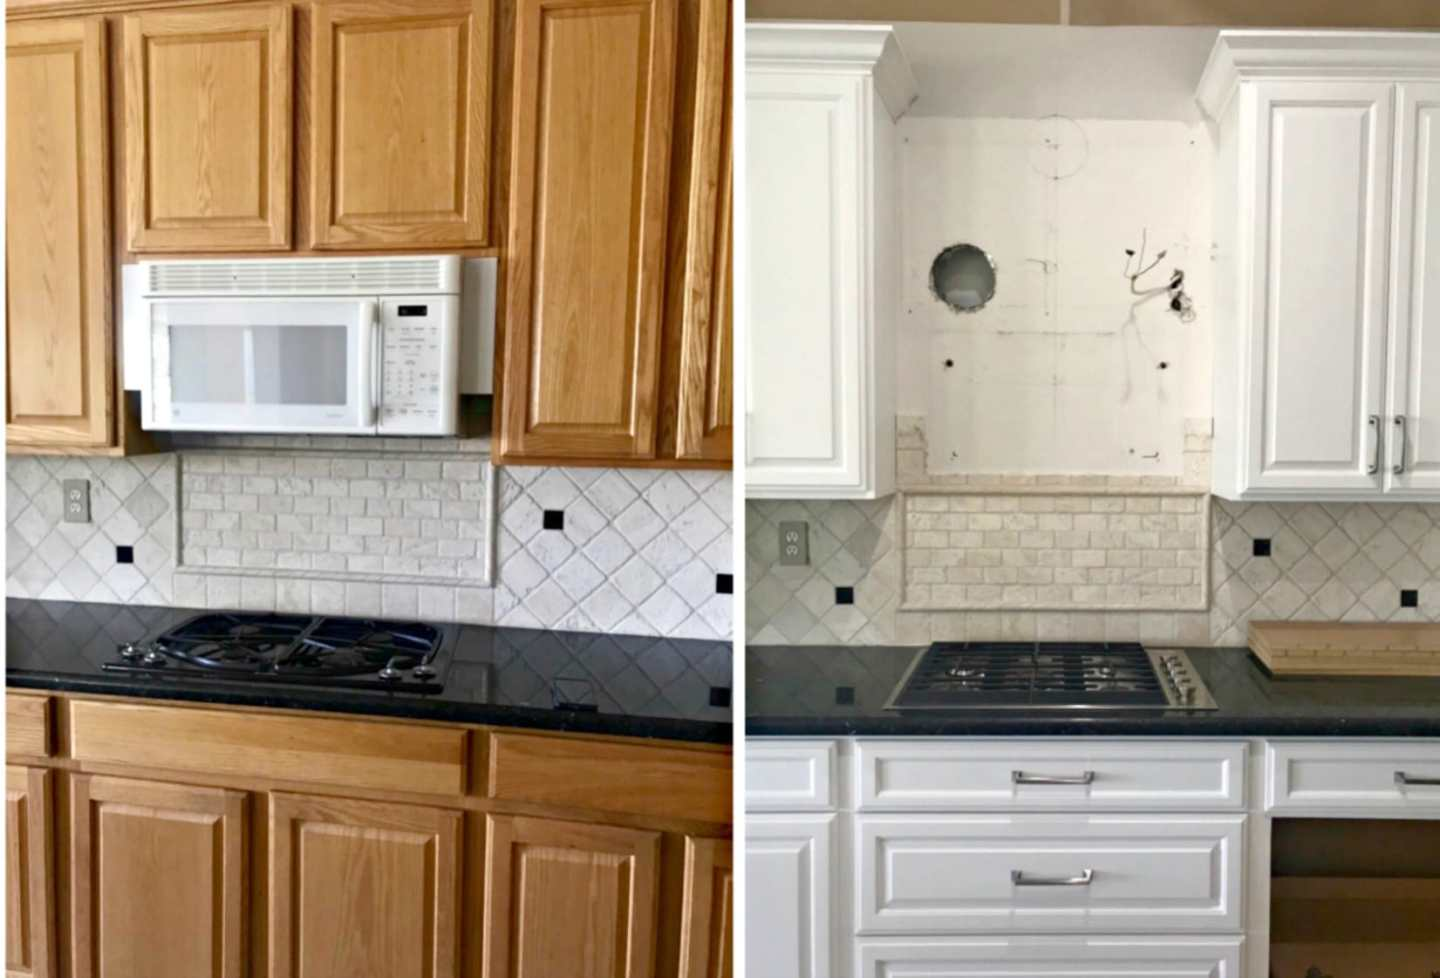 oal cabinets before and after painting white on A Well Styled Life